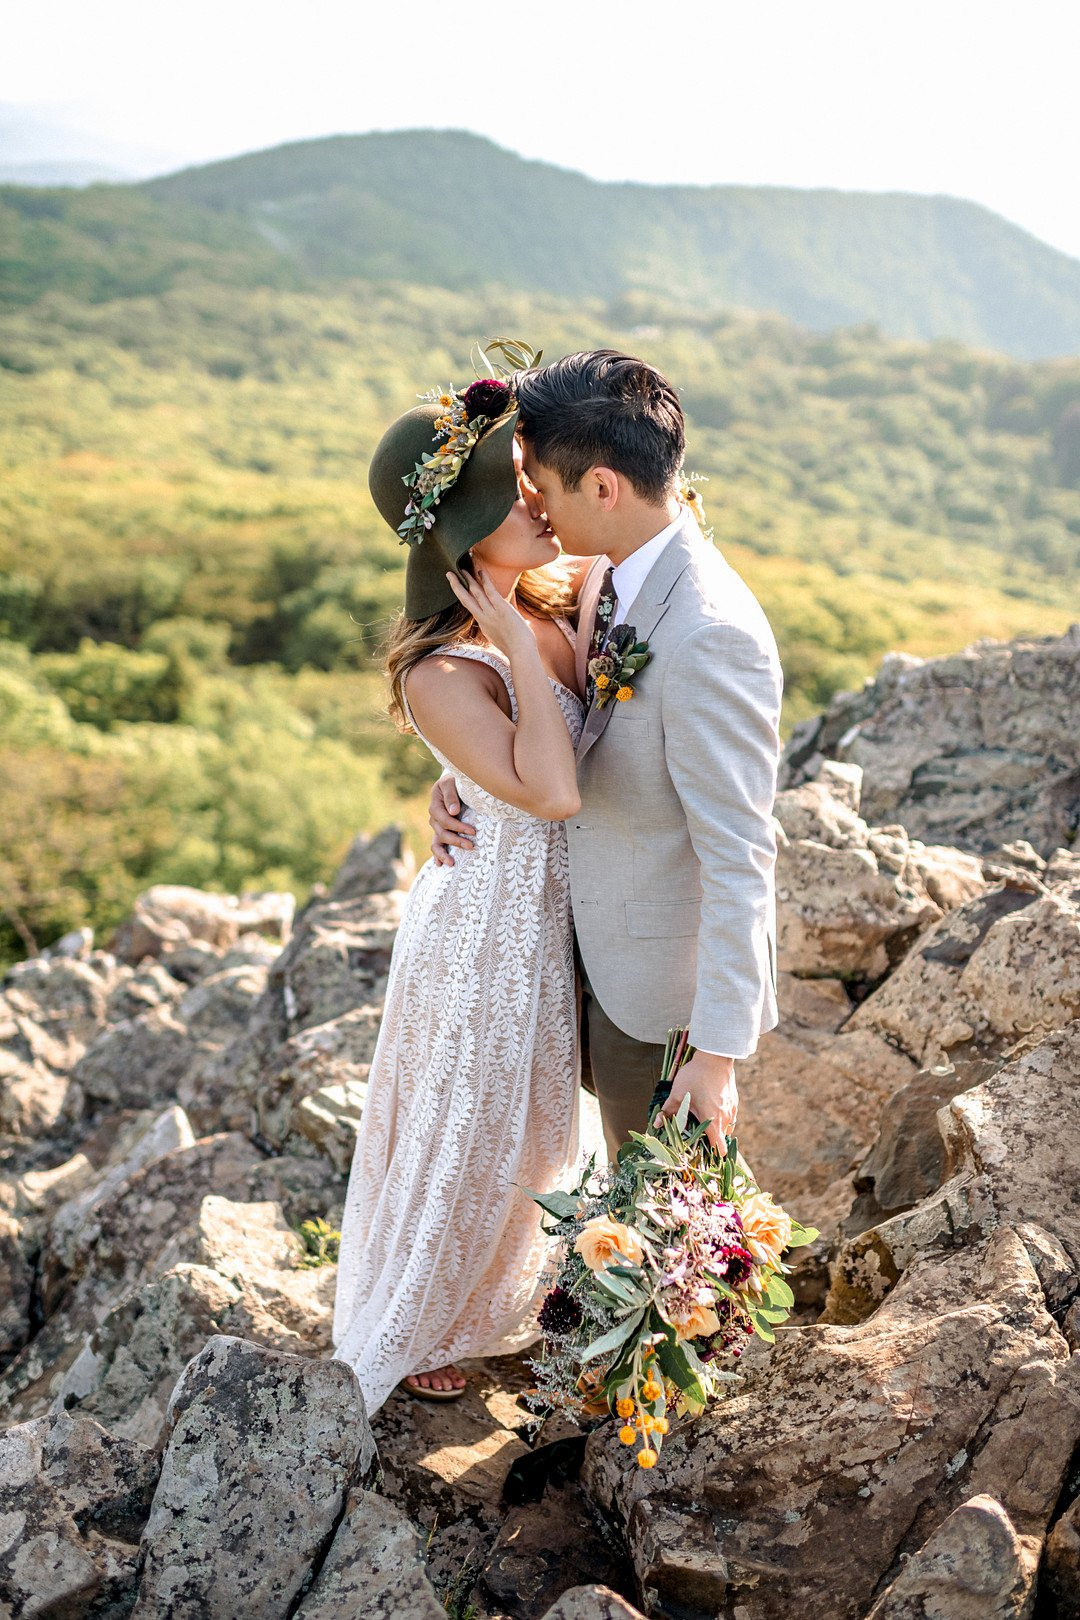 Boho Mountain Elopement in Shenandoah National Park_1001 Angles Photography_Shenandoah National Park Adventure Elopement-121_low